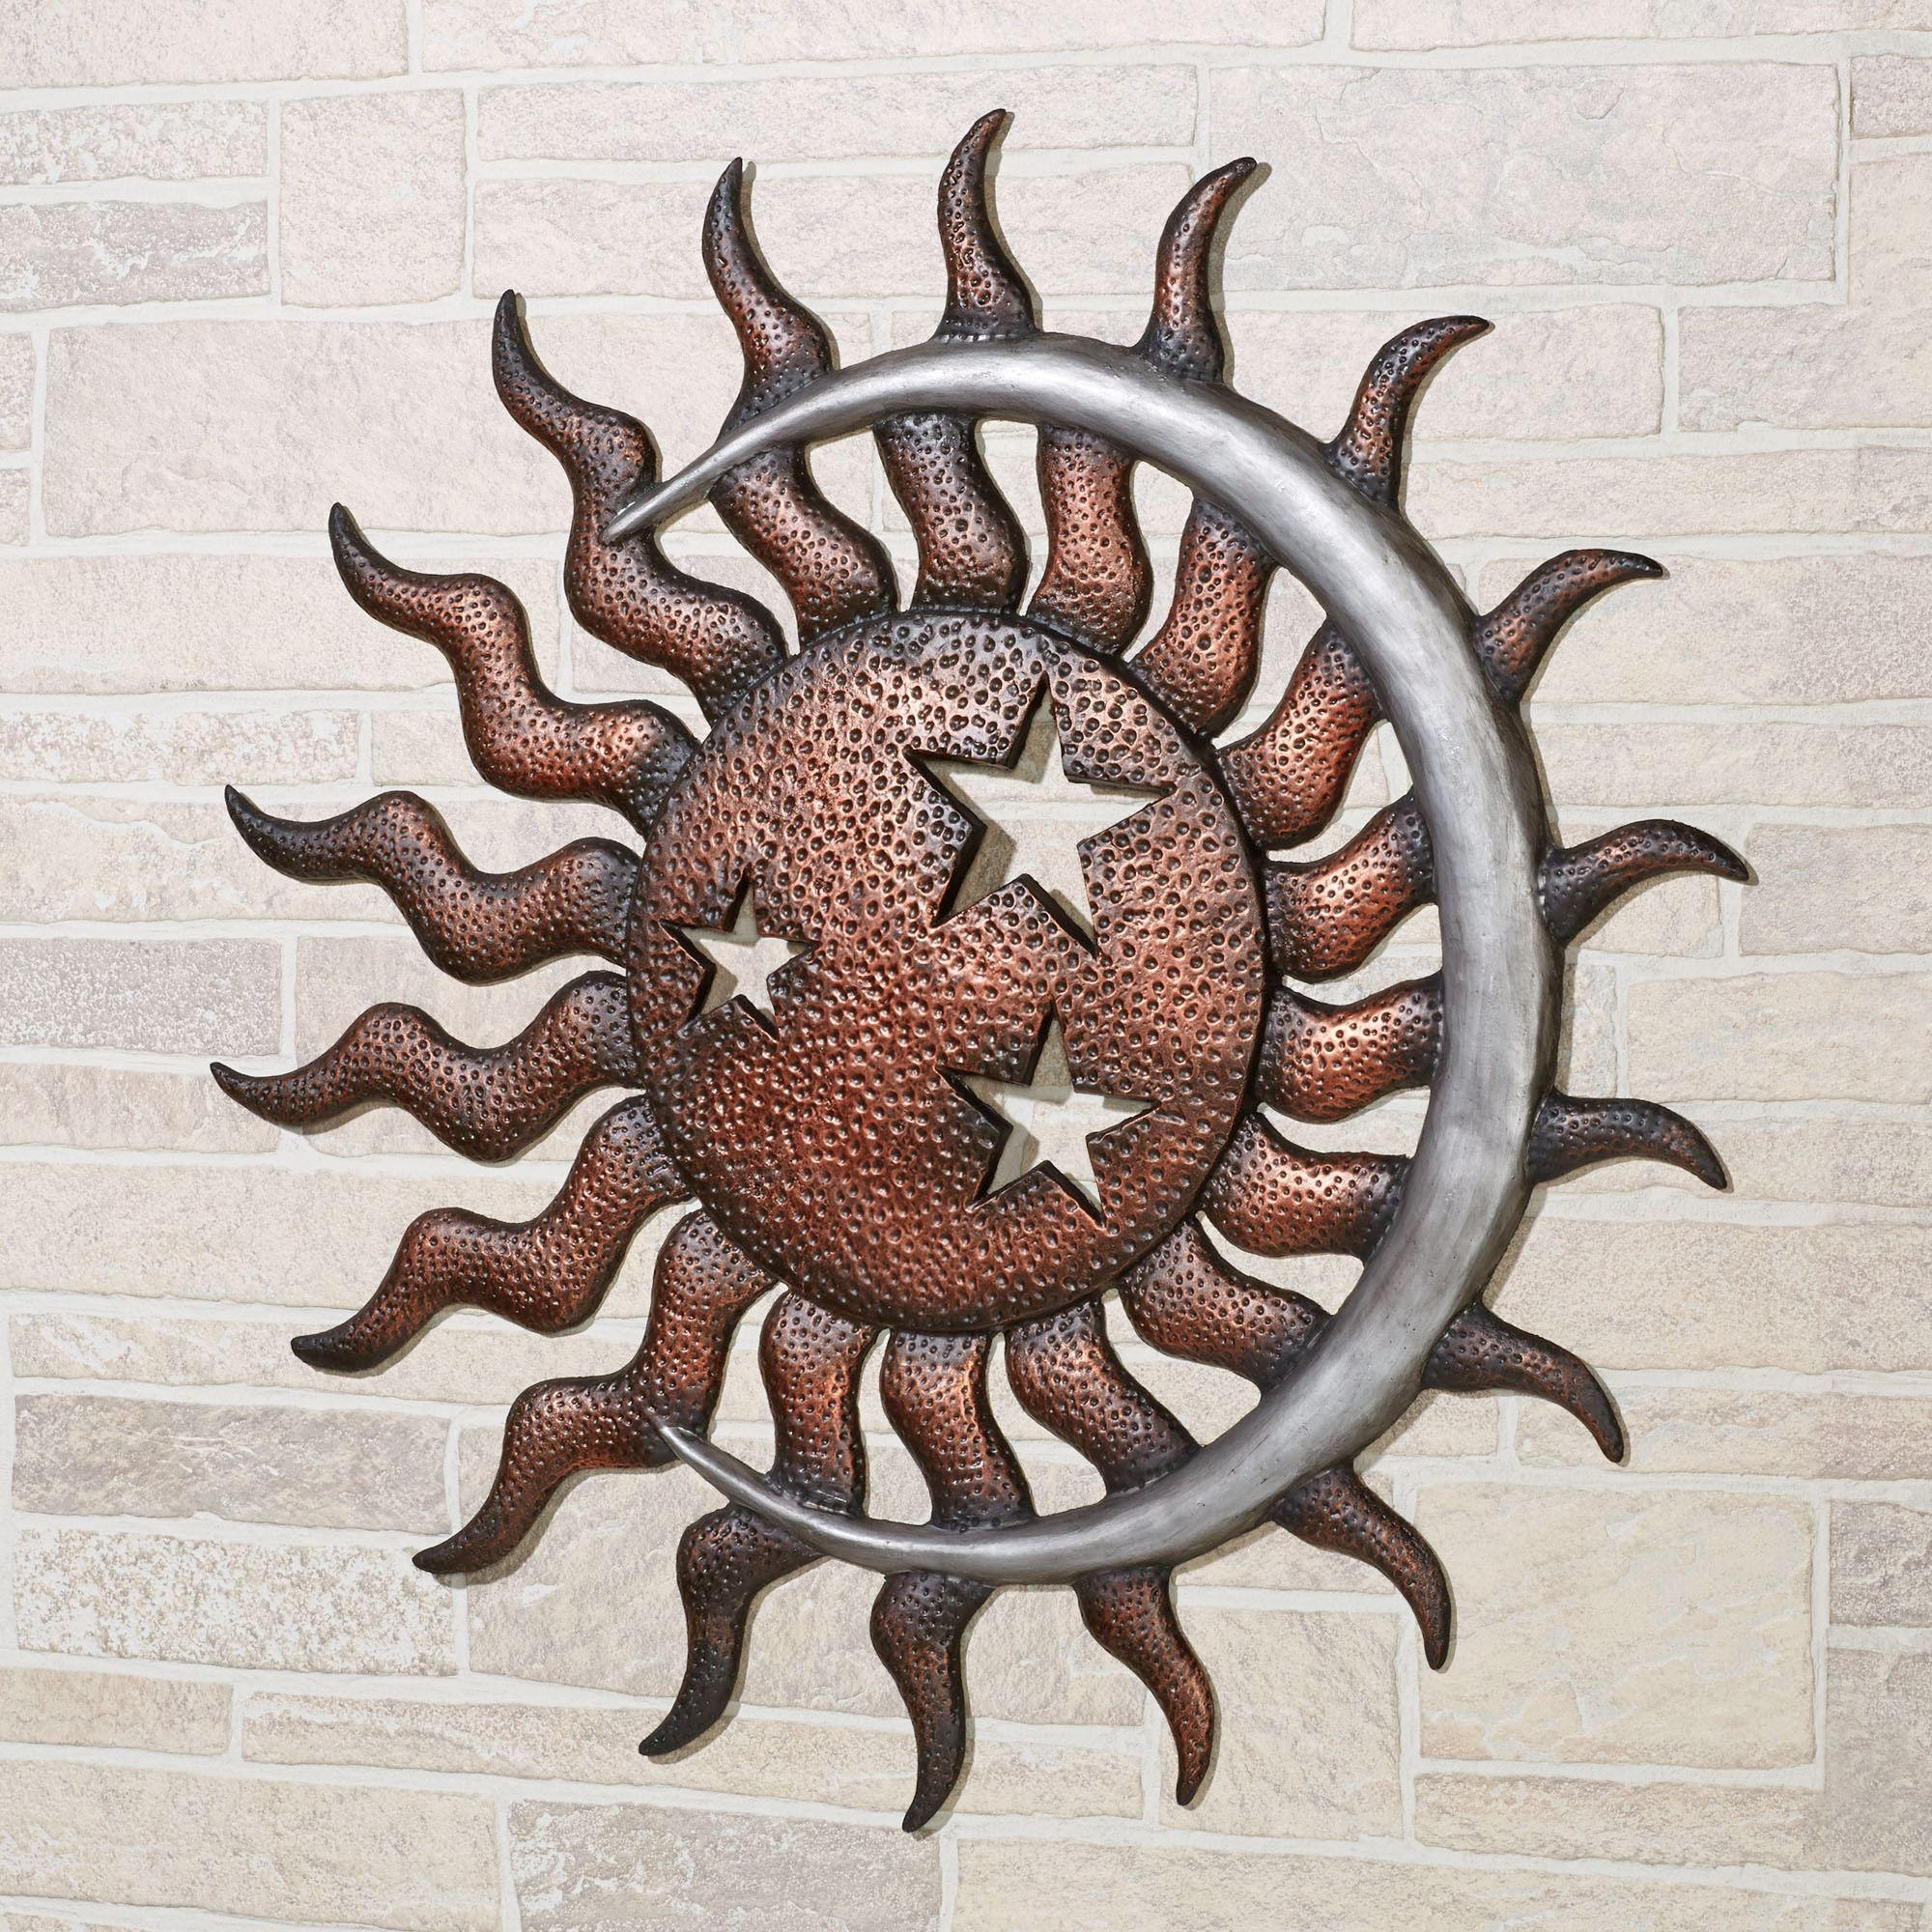 Fascinating Outdoor Metal Wall Art Sun And Moon Fiesta Sun Indoor For Wrought Iron Garden Wall Art (Image 4 of 20)